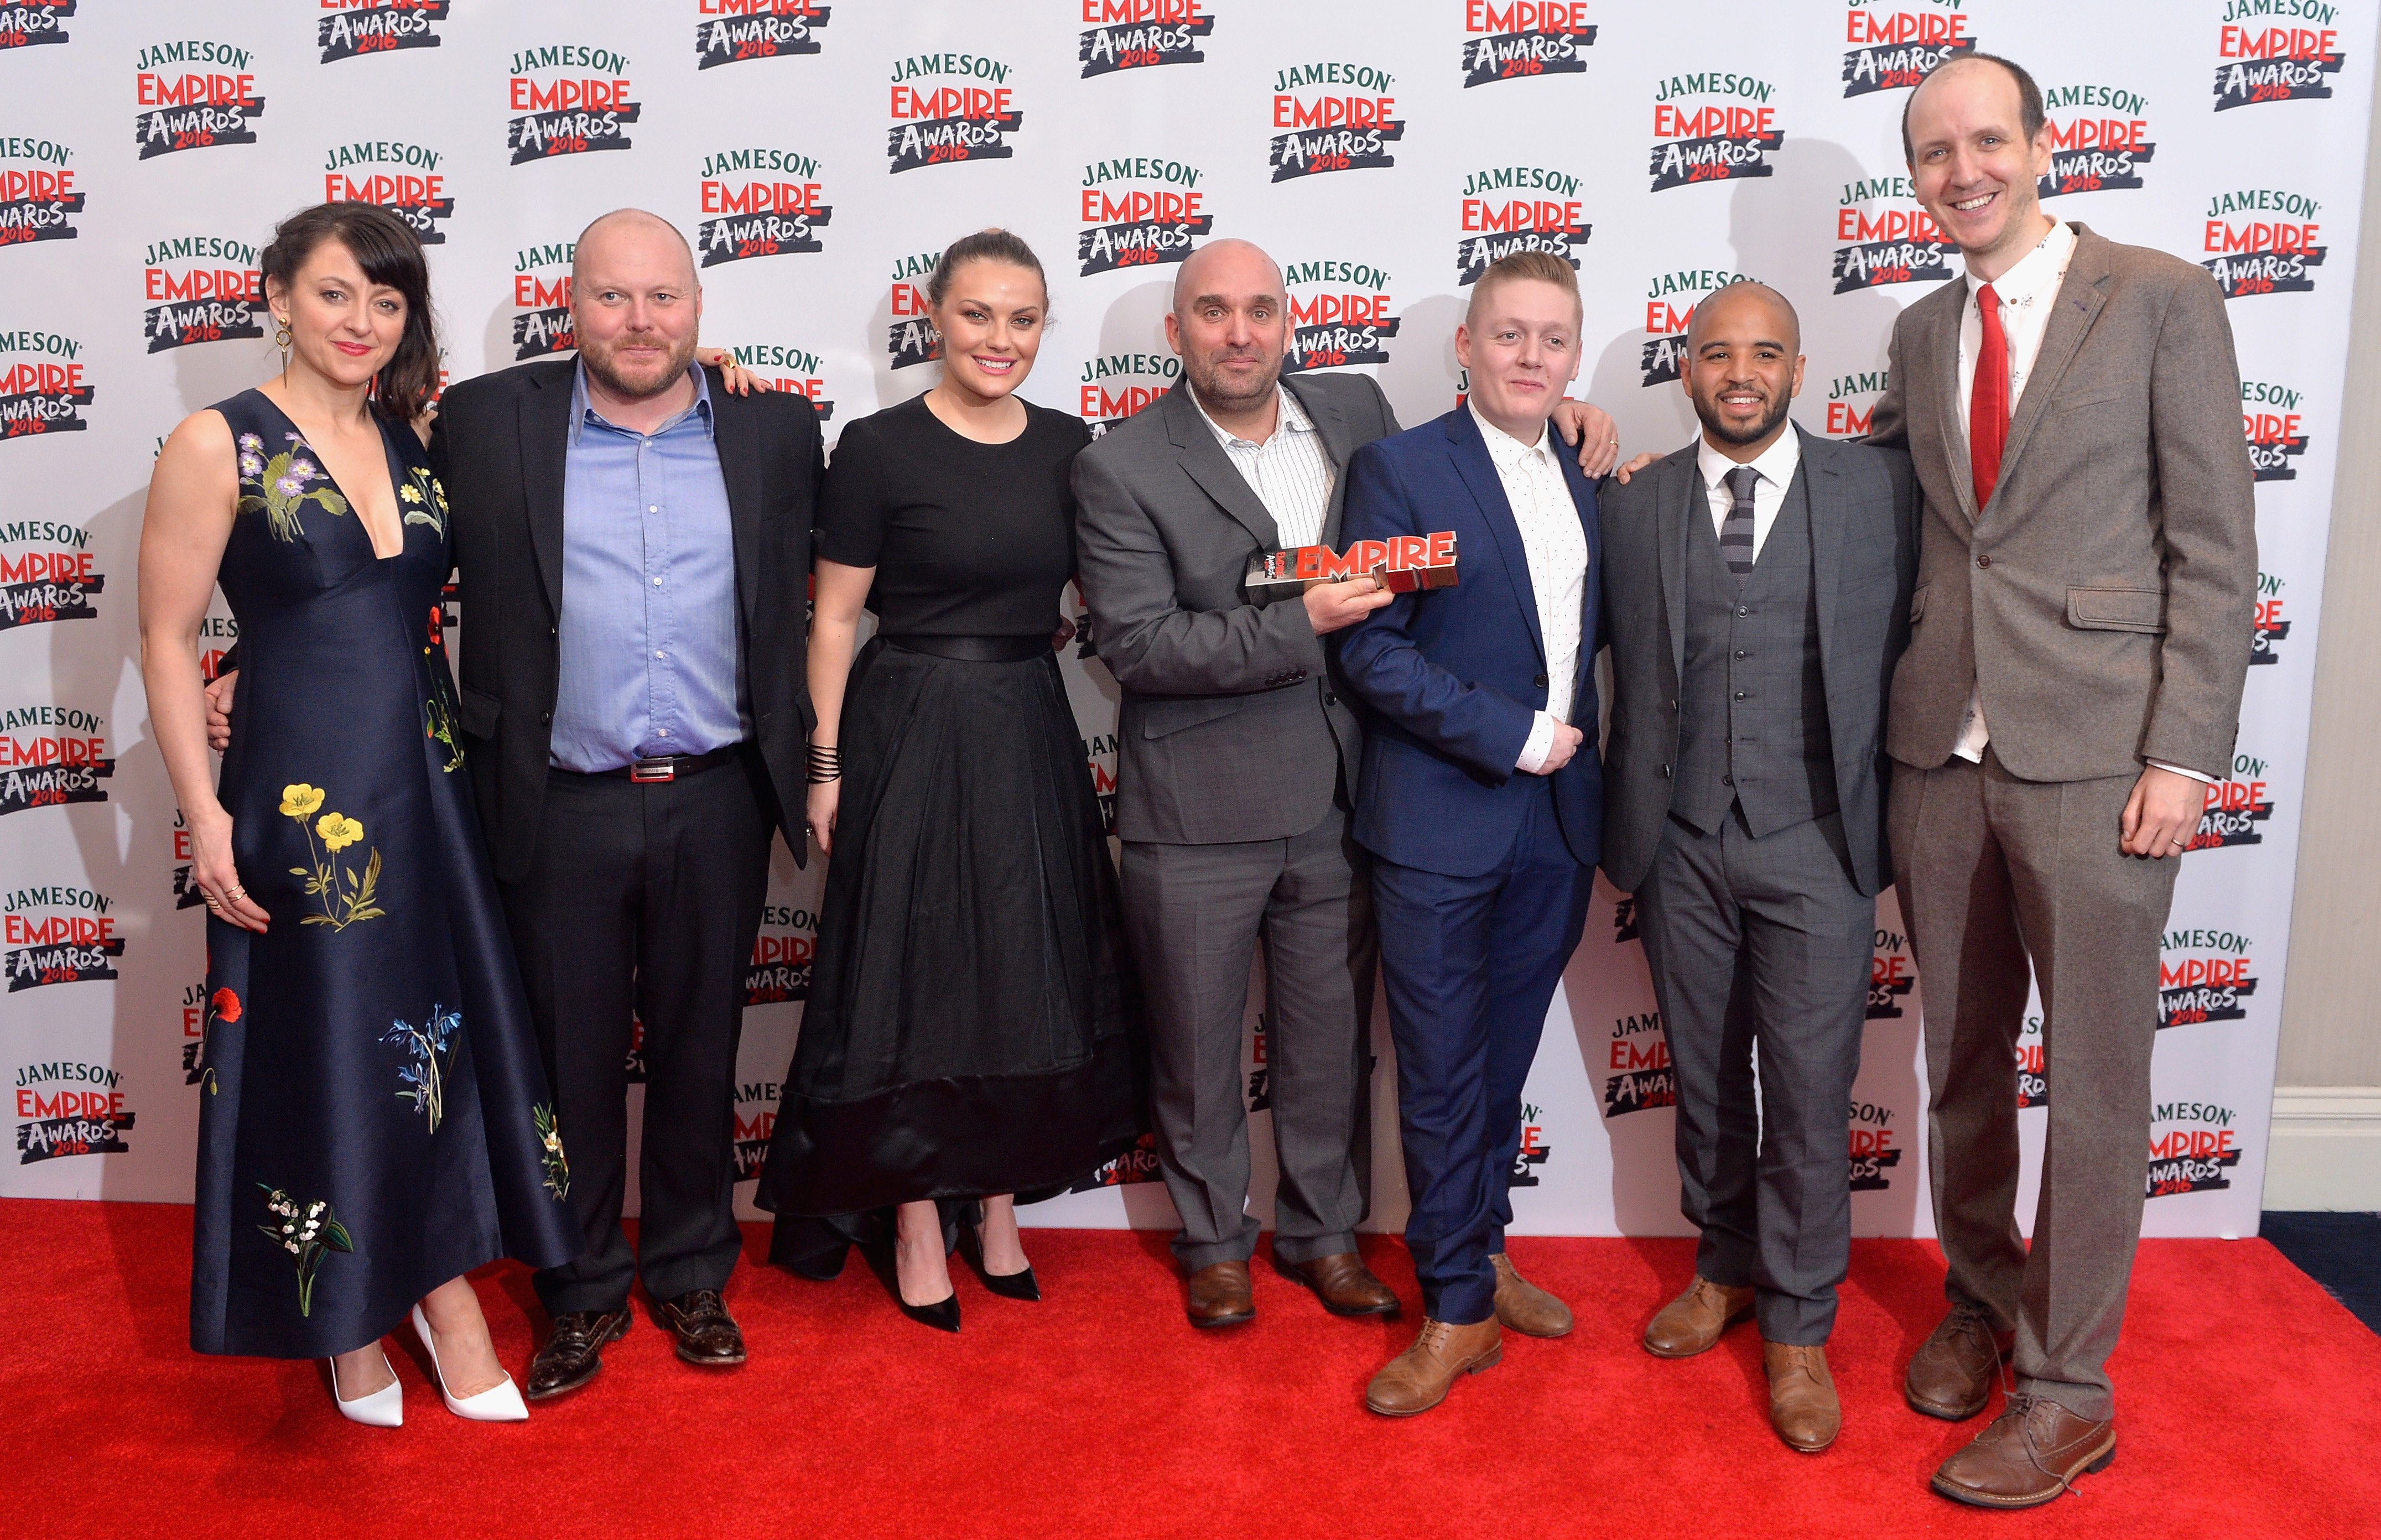 LONDON, ENGLAND - MARCH 20: Cast of This Is England '90; Jo Hartley, Mark Herbert, Chanel Cresswell, Shane Meadows, Thomas Turgoose, Andrew Shim and guest pose in the winners room at the Jameson Empire Awards 2016 at The Grosvenor House Hotel on March 20, 2016 in London, England. (Photo by Anthony Harvey/Getty Images)